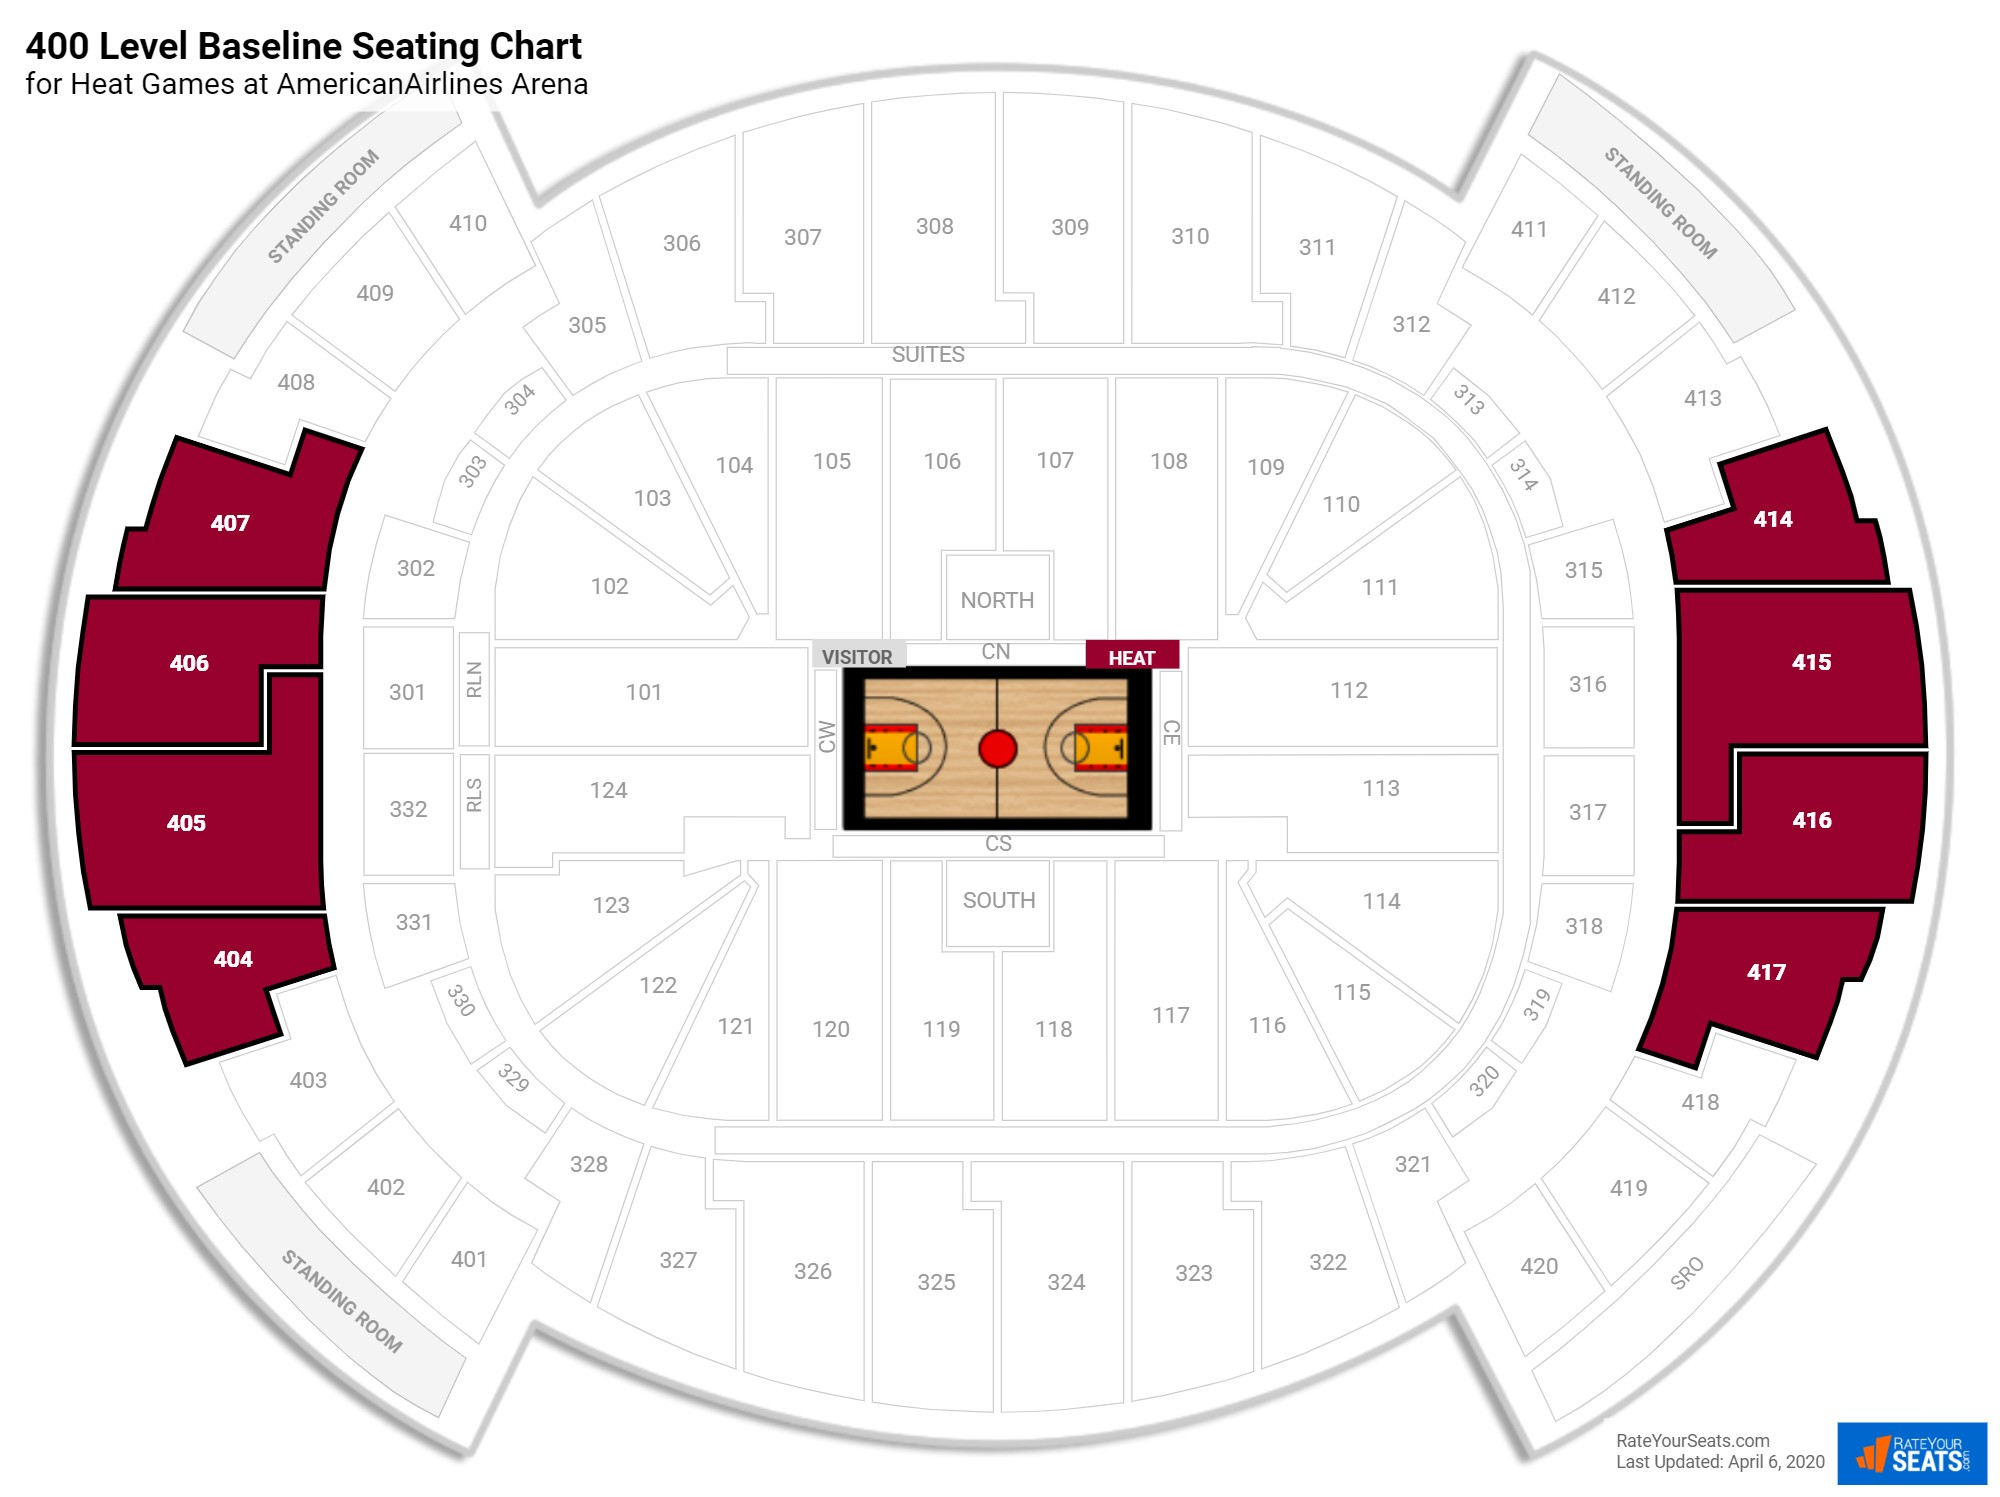 AmericanAirlines Arena 400 Level Baseline seating chart